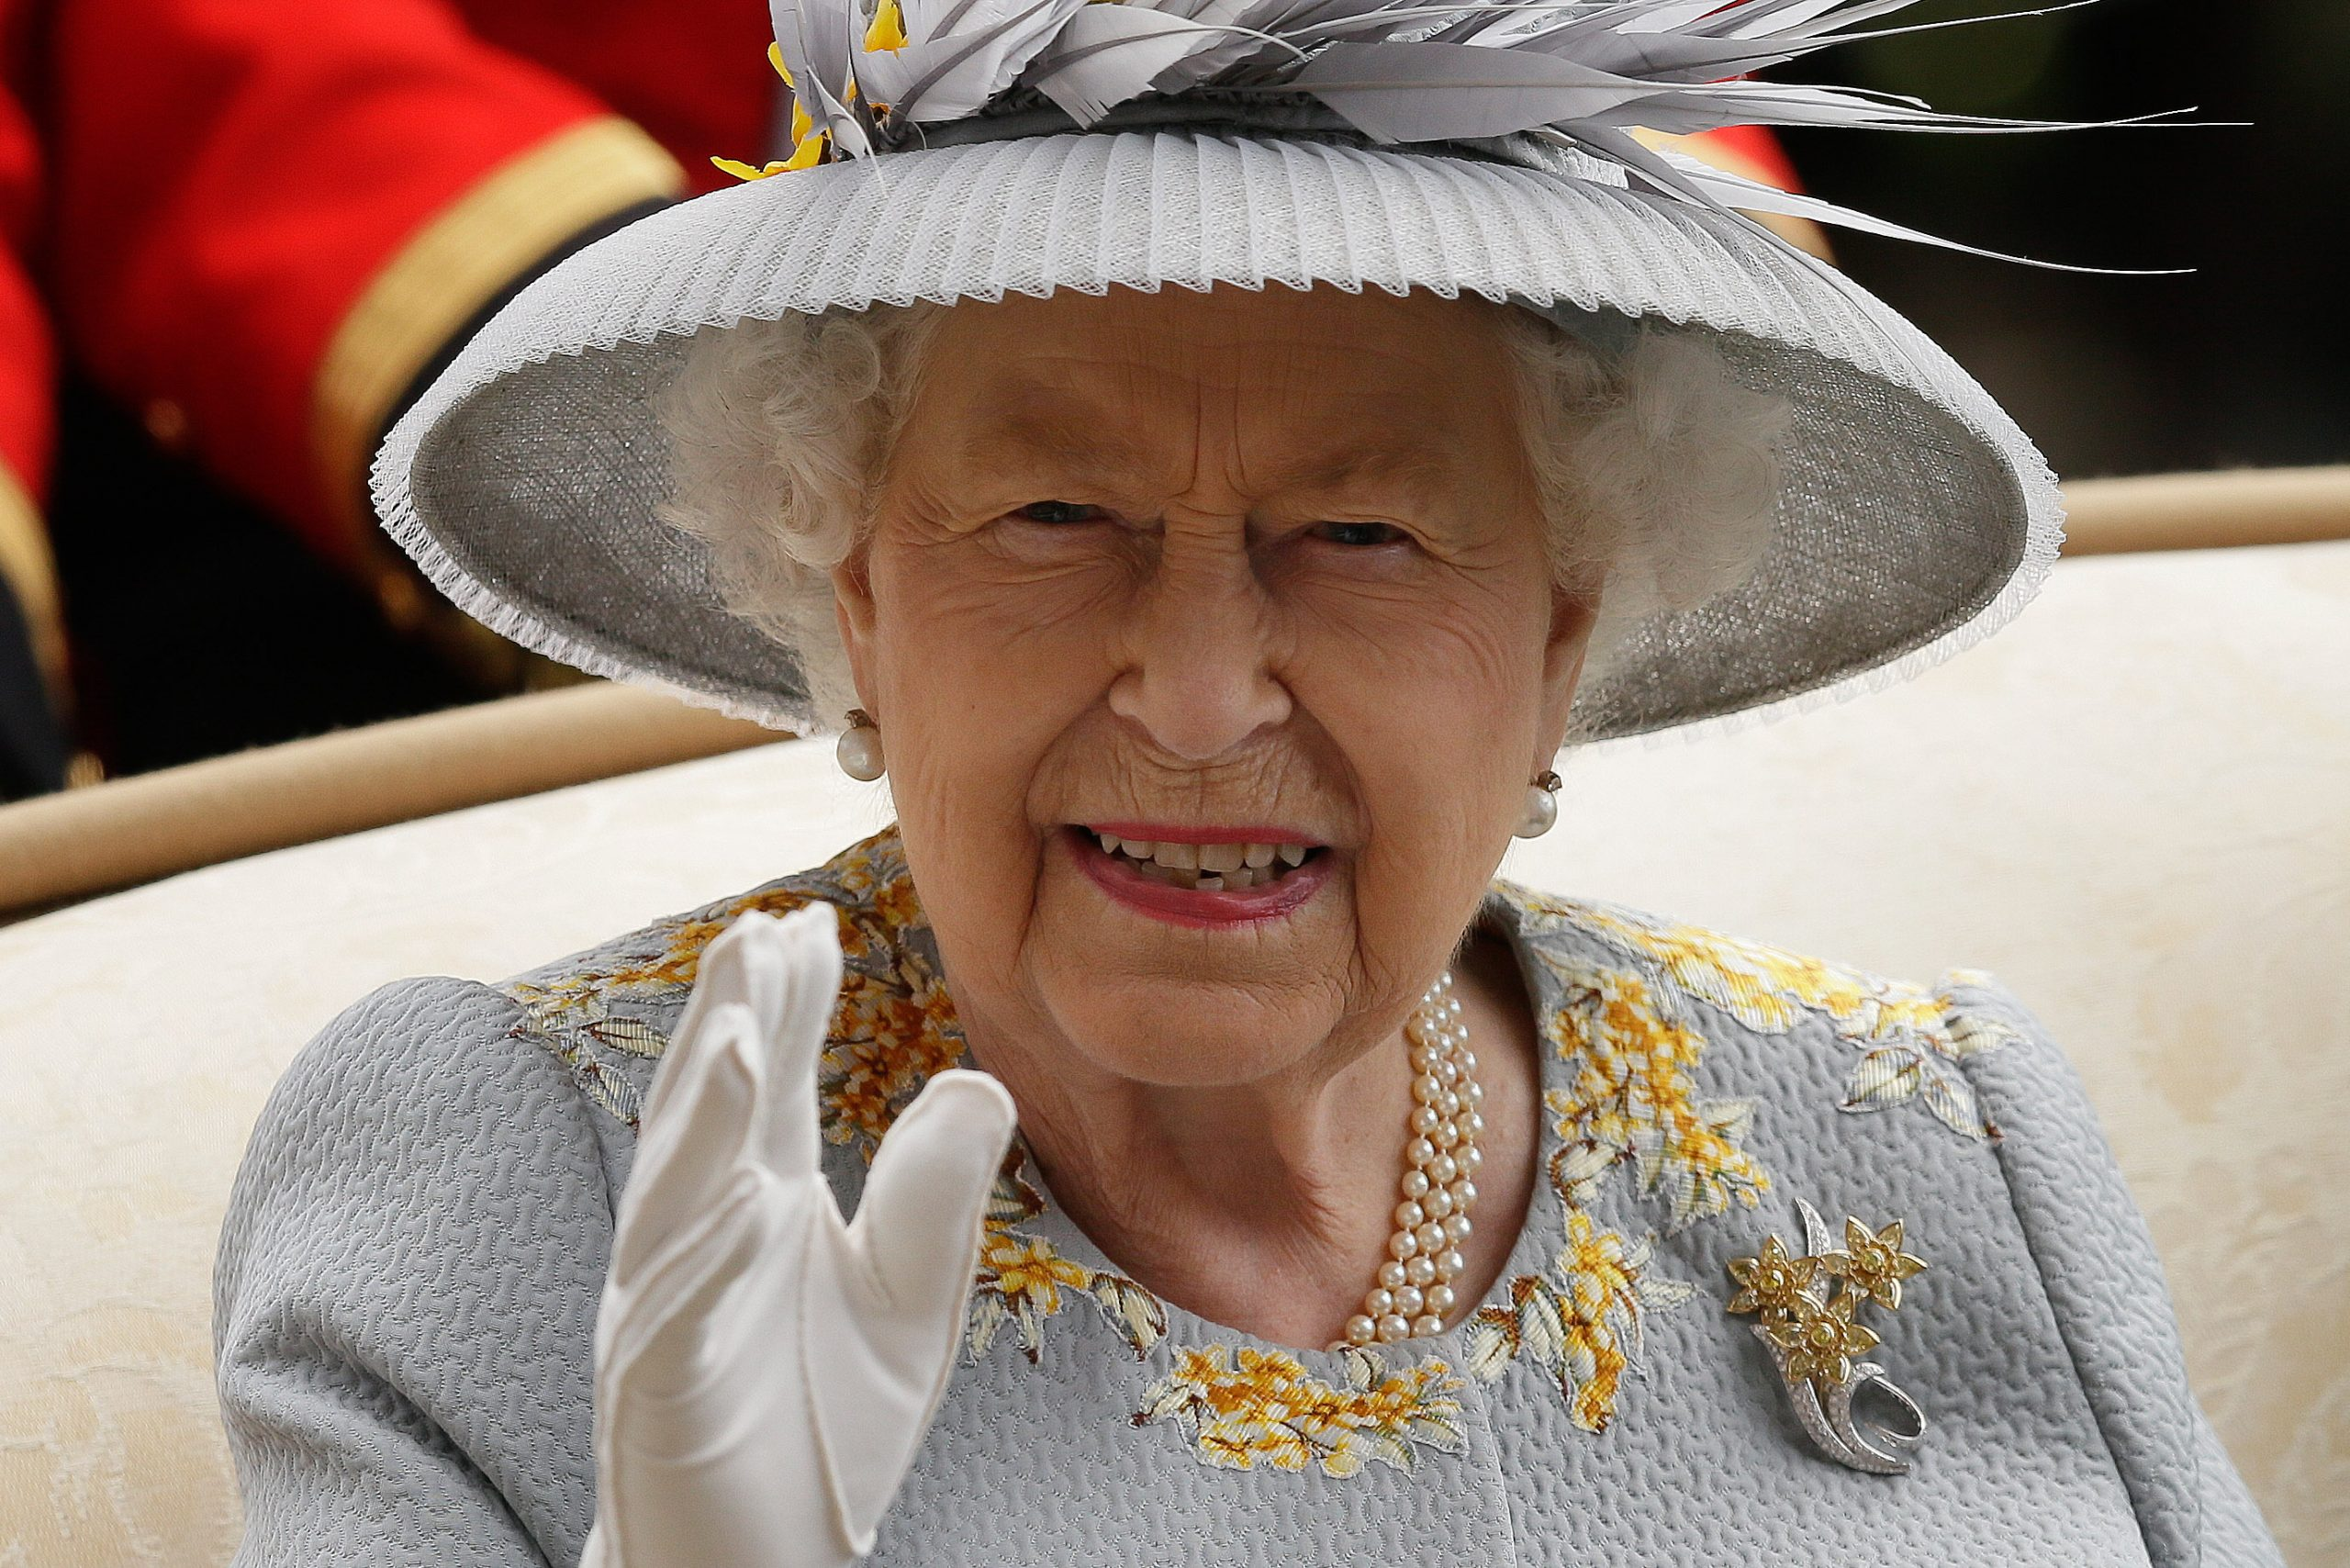 Queen thanks public for support over Prince Philip's passing